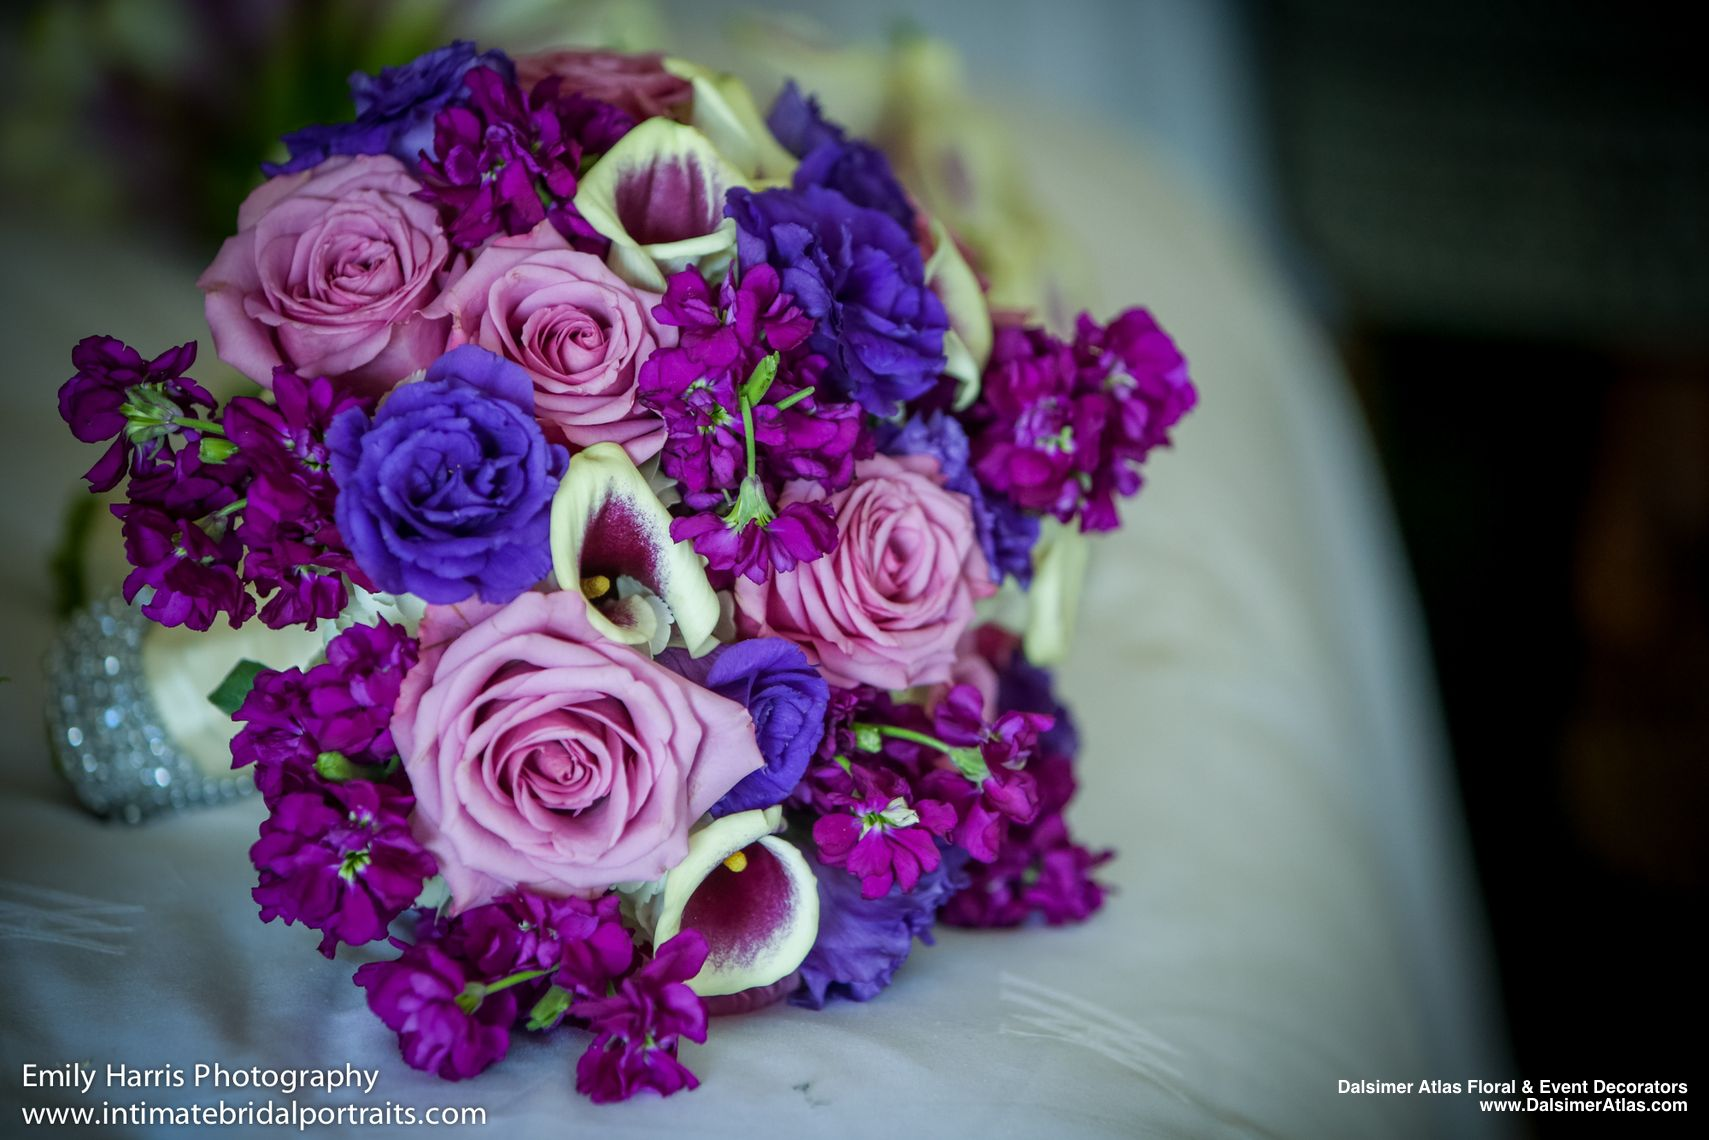 wedding-florist-flowers-decorations-bnai-israel-boca-raton-florida-dalsimer-atlas-1